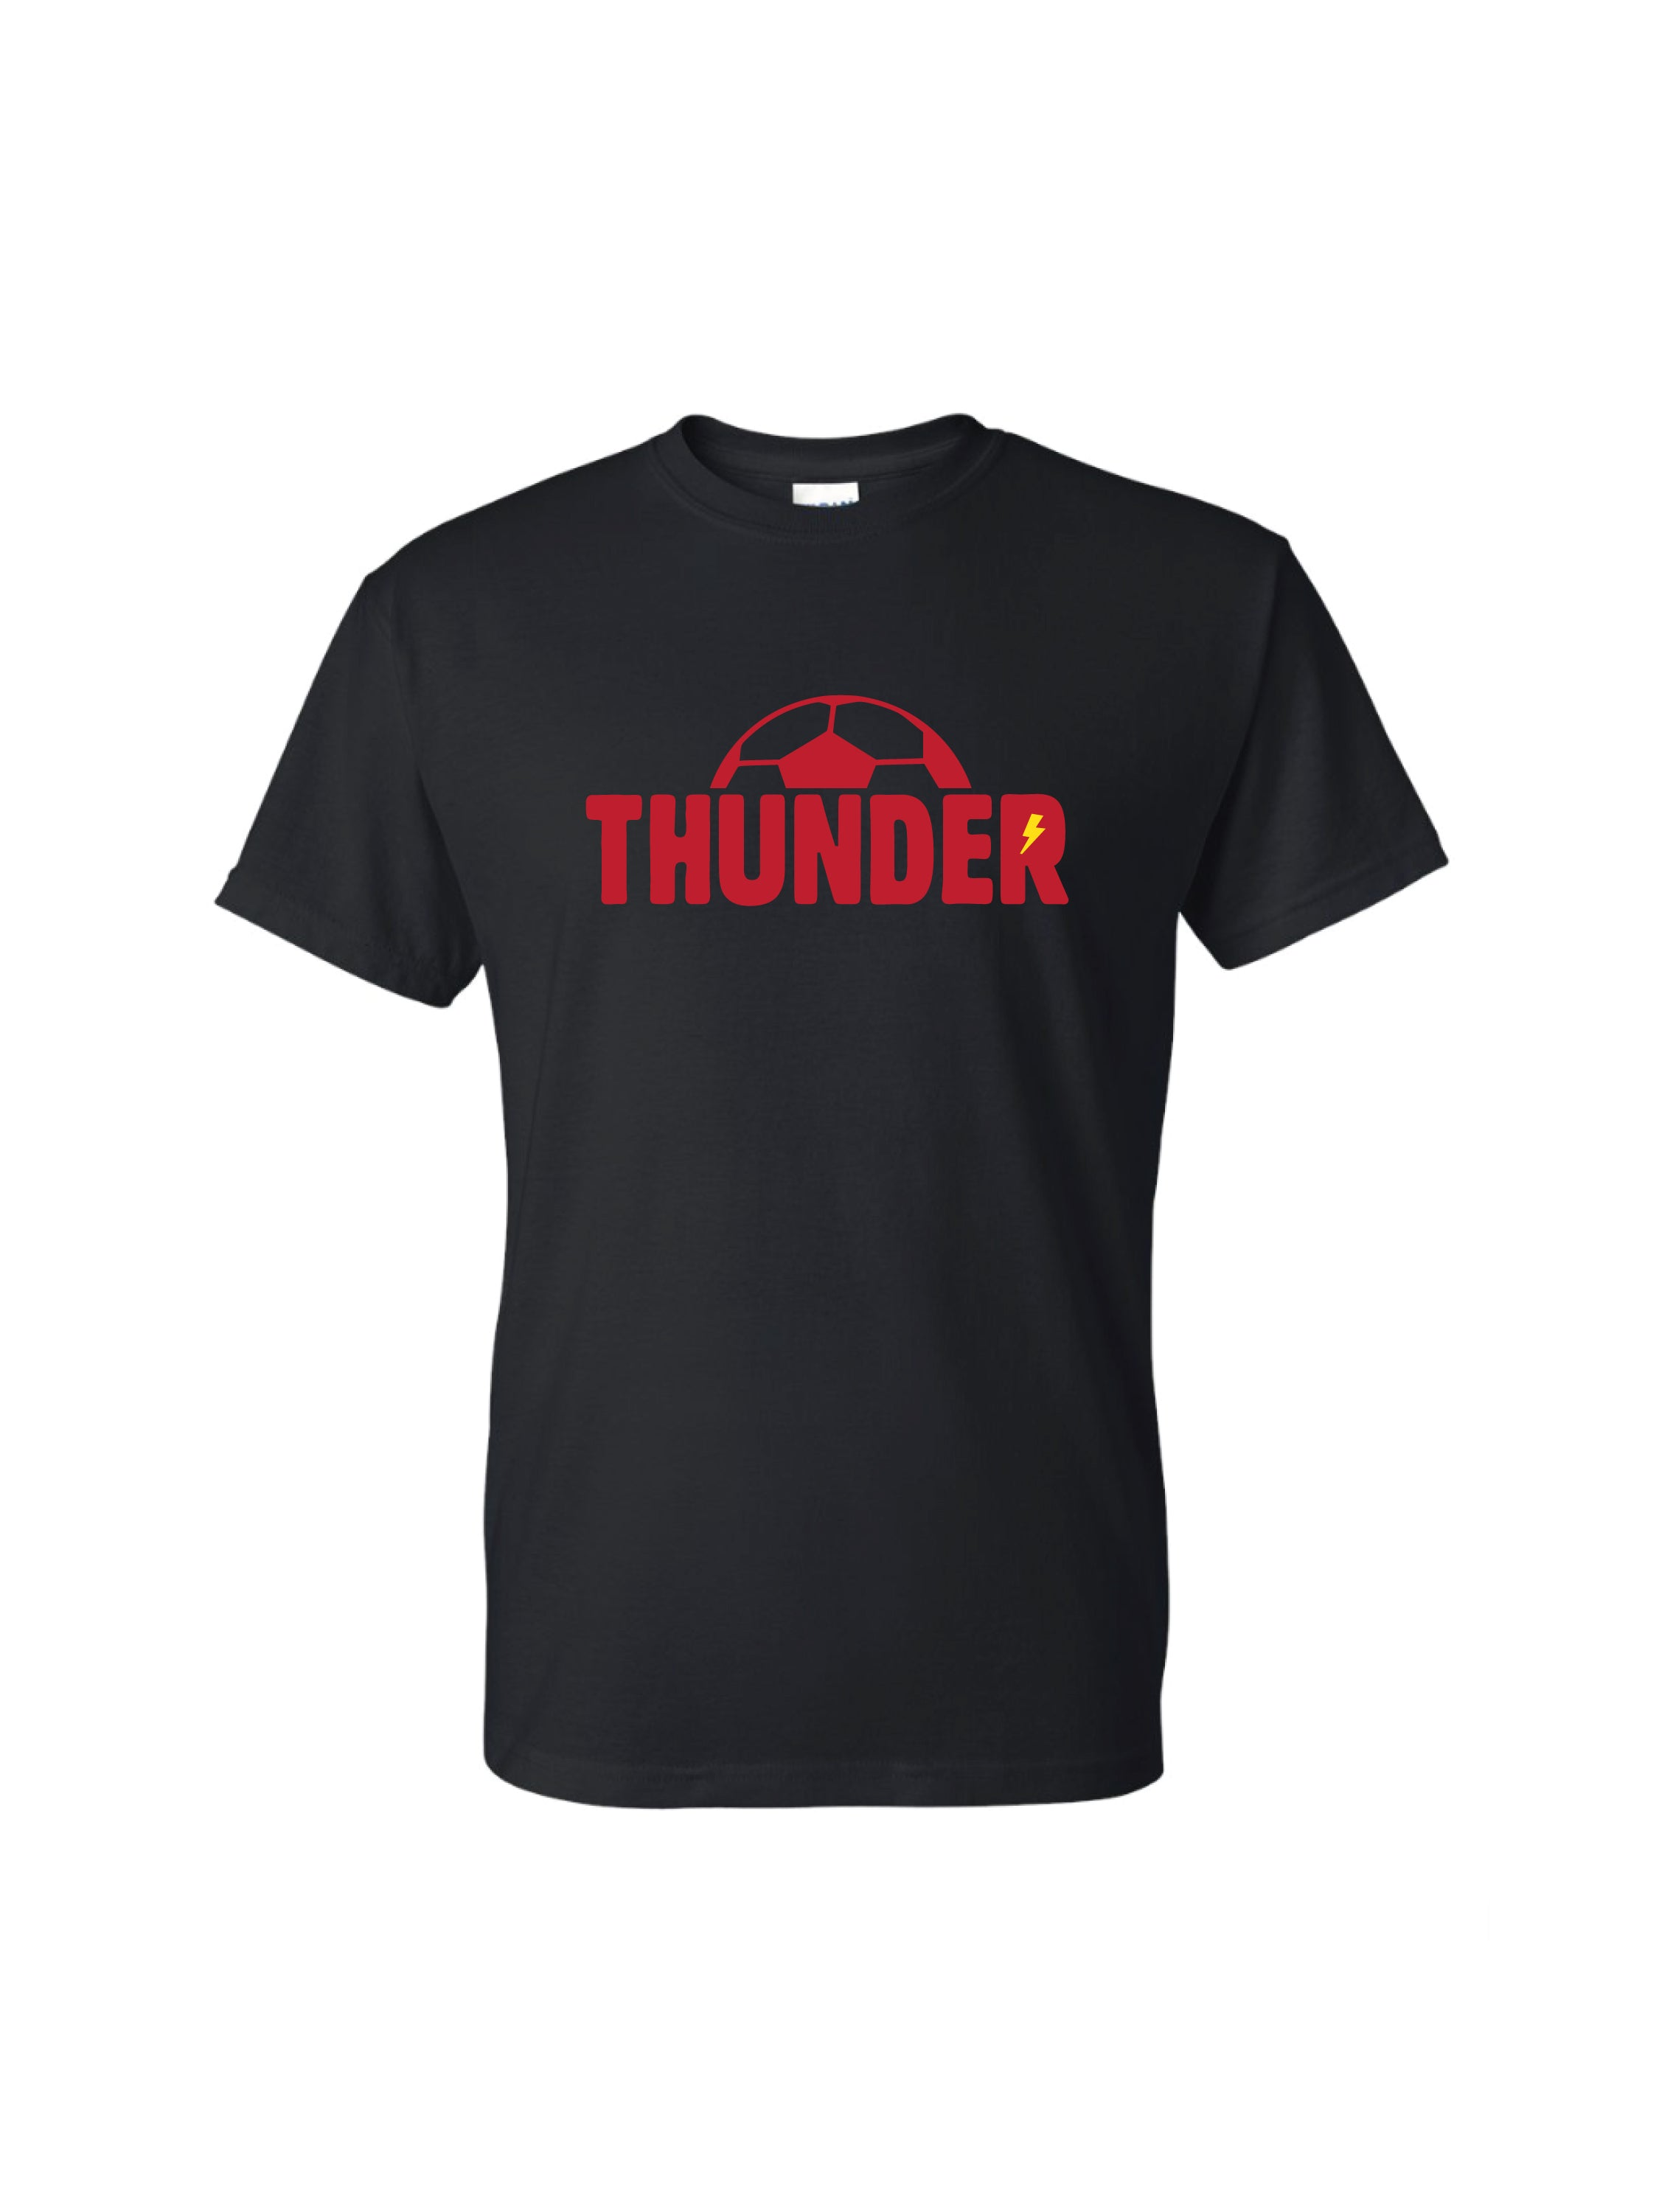 Boys Thunder 50/50 DryBlend T-Shirt -Youth